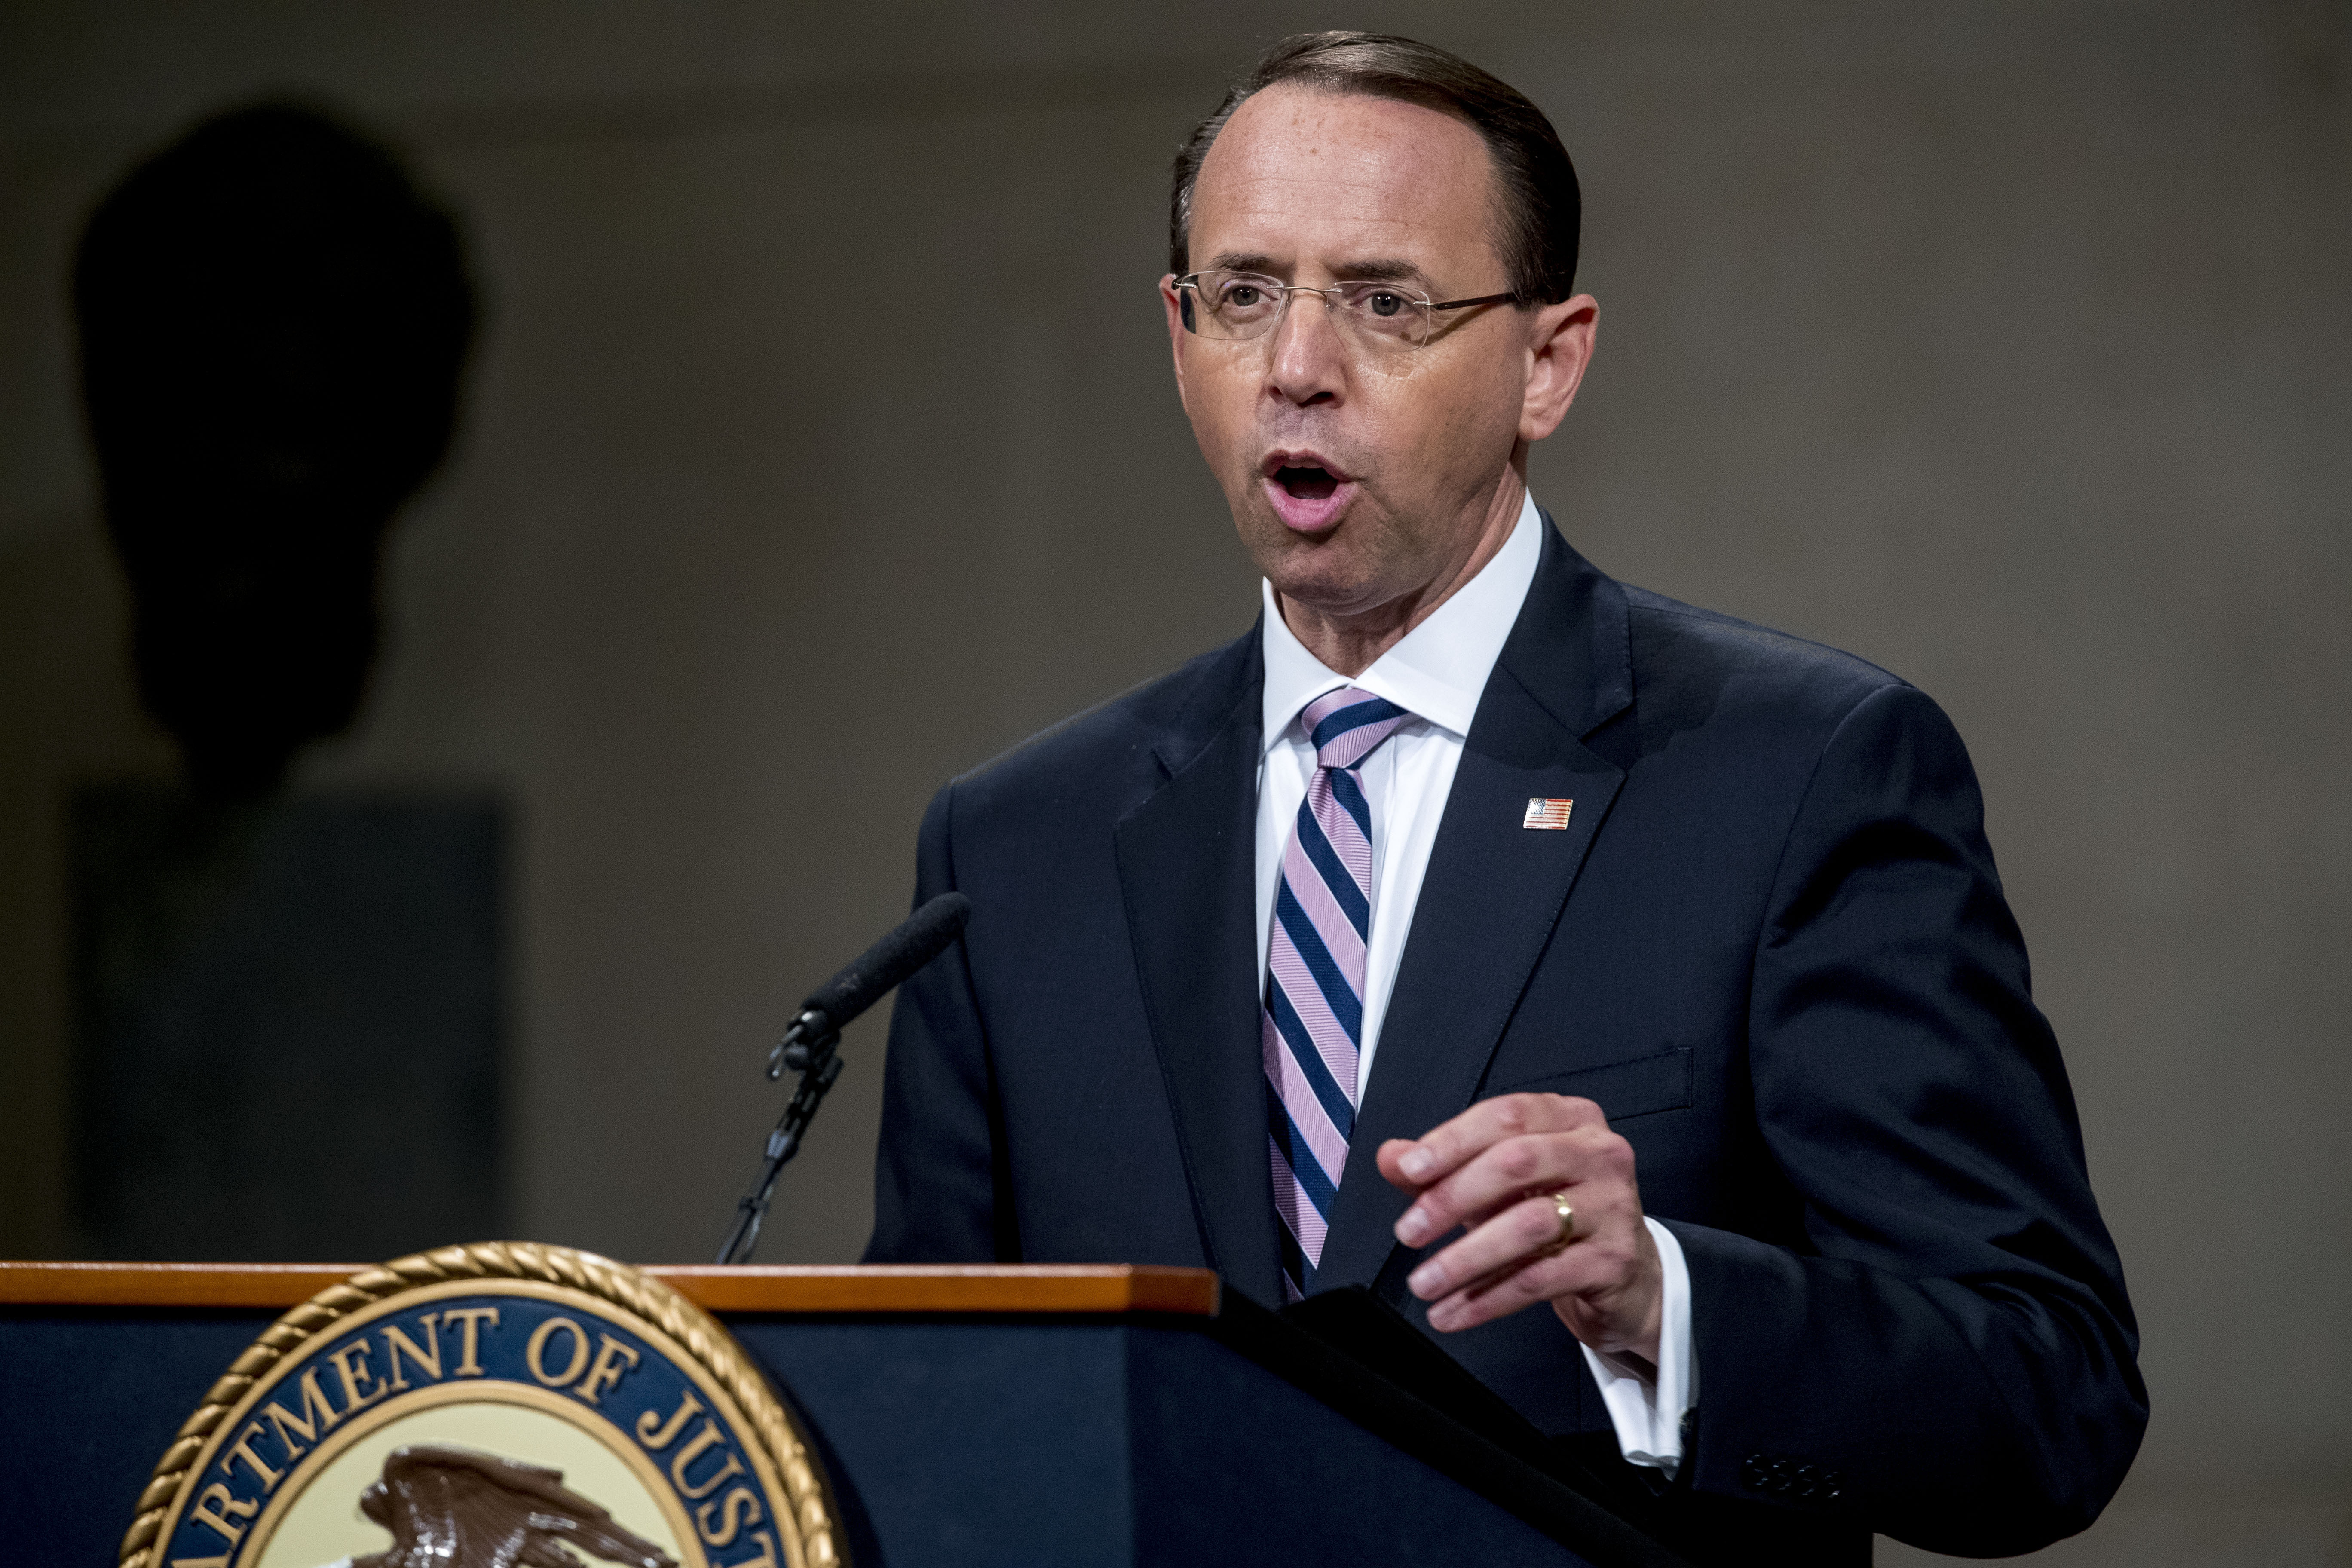 Rod Rosenstein plotted Trump coup, Judicial Watch says